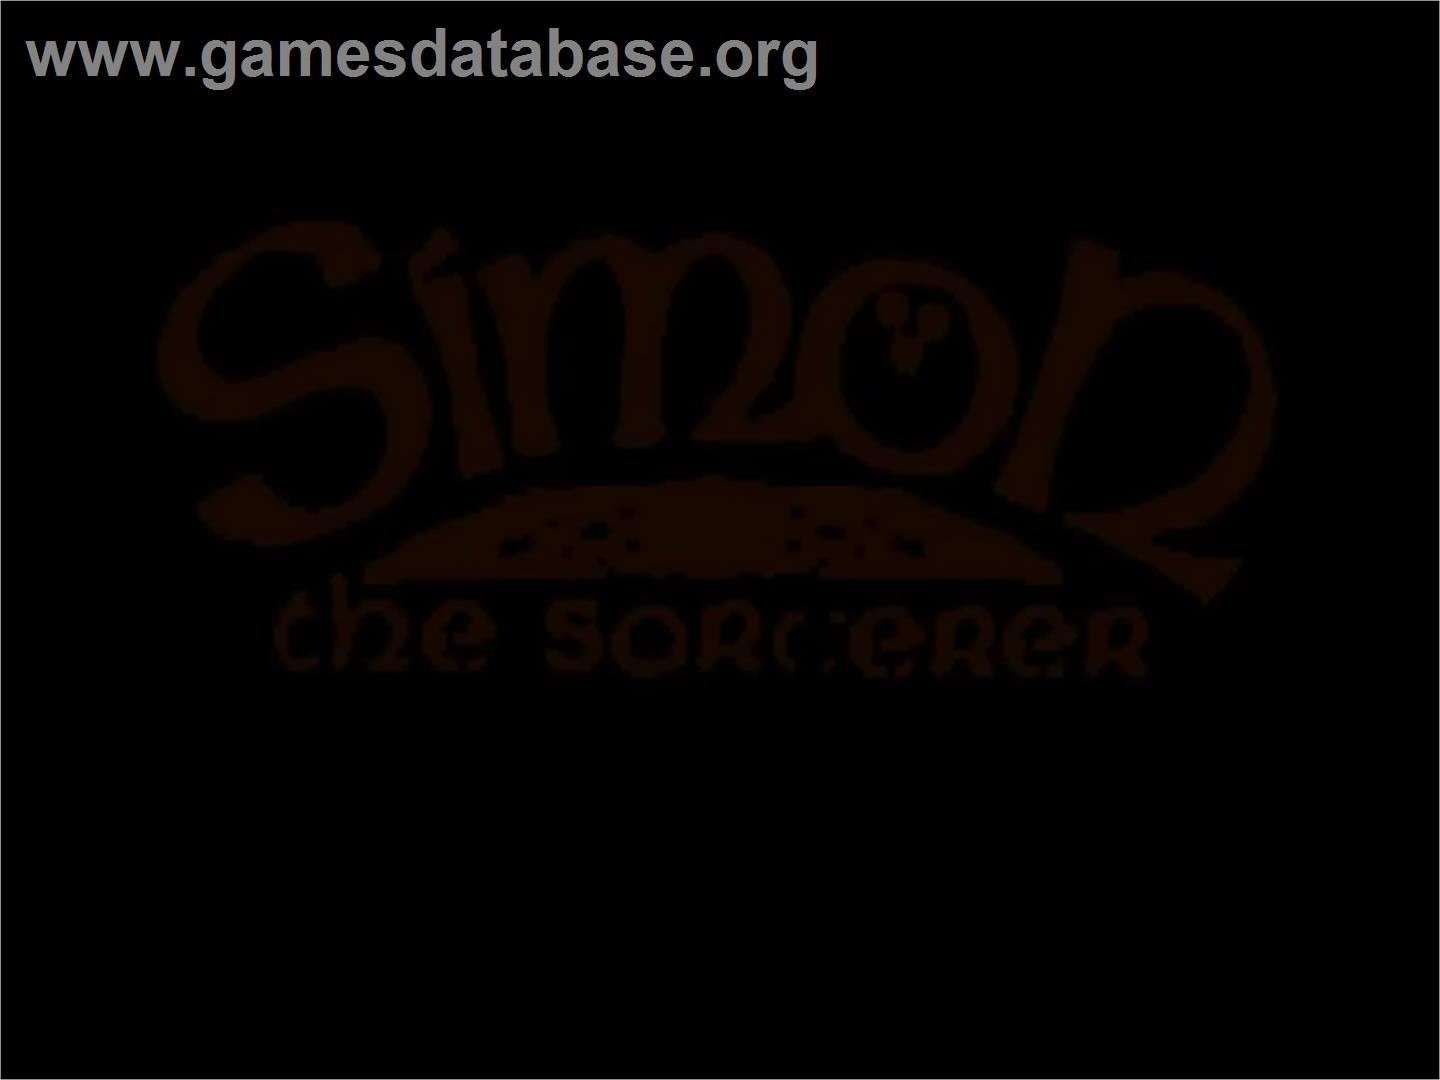 Simon the Sorcerer - Commodore Amiga CD32 - Artwork - Title Screen